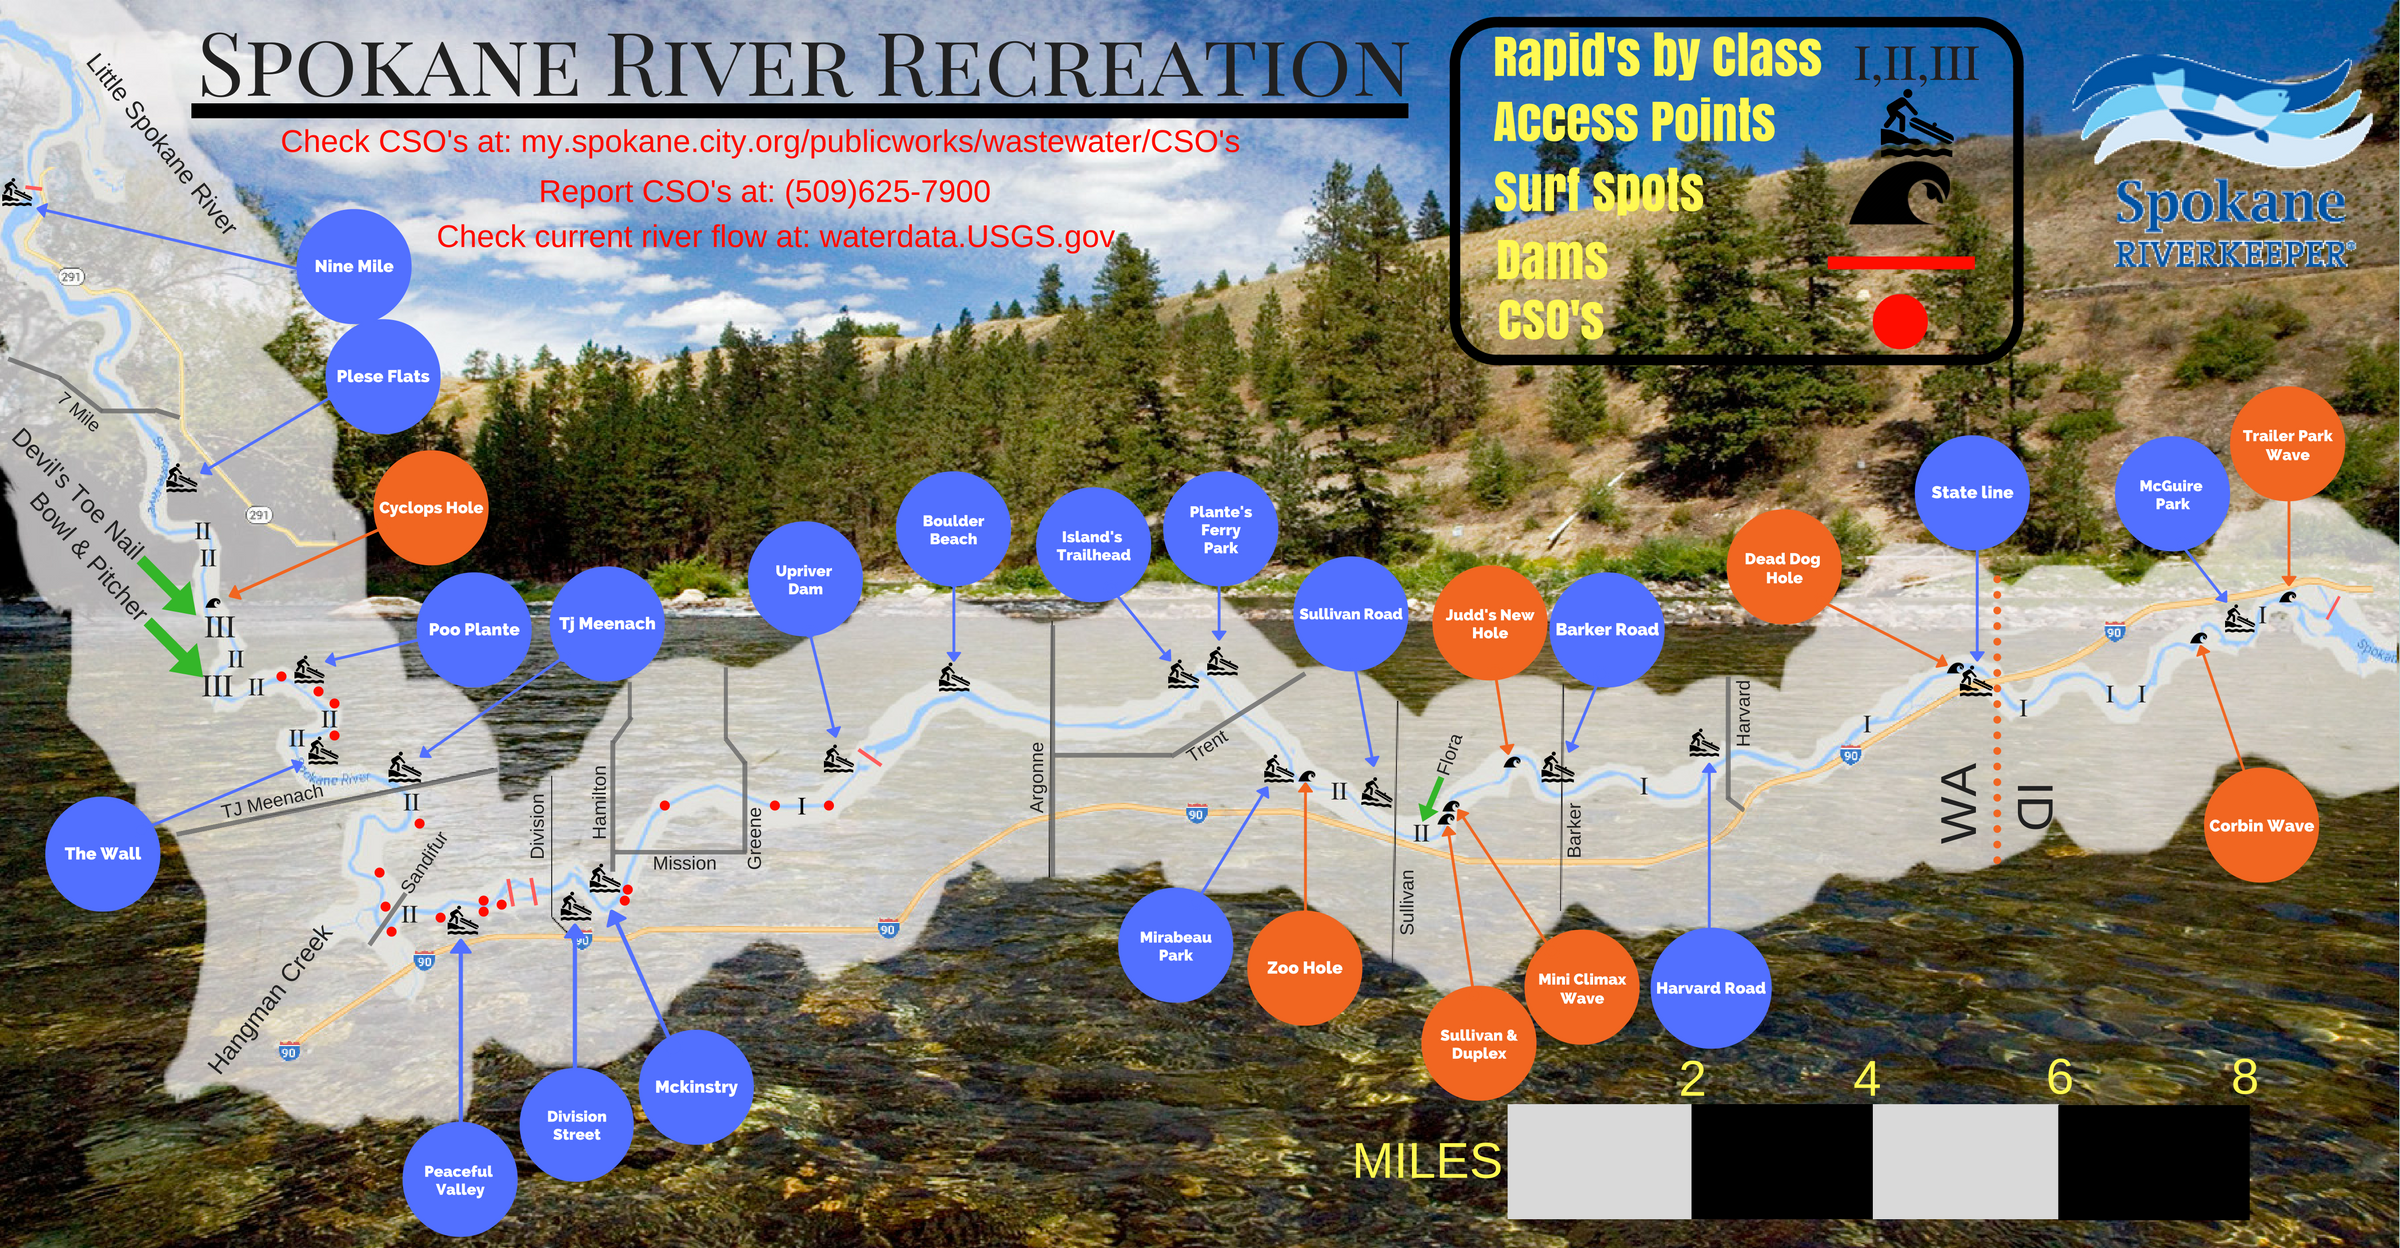 We helped produced a multi-map of the river from below Post Falls Dam to Riverside State Park, meant to be viewed as eight-fold. One side shows access points and rapids, the other has some great river facts.